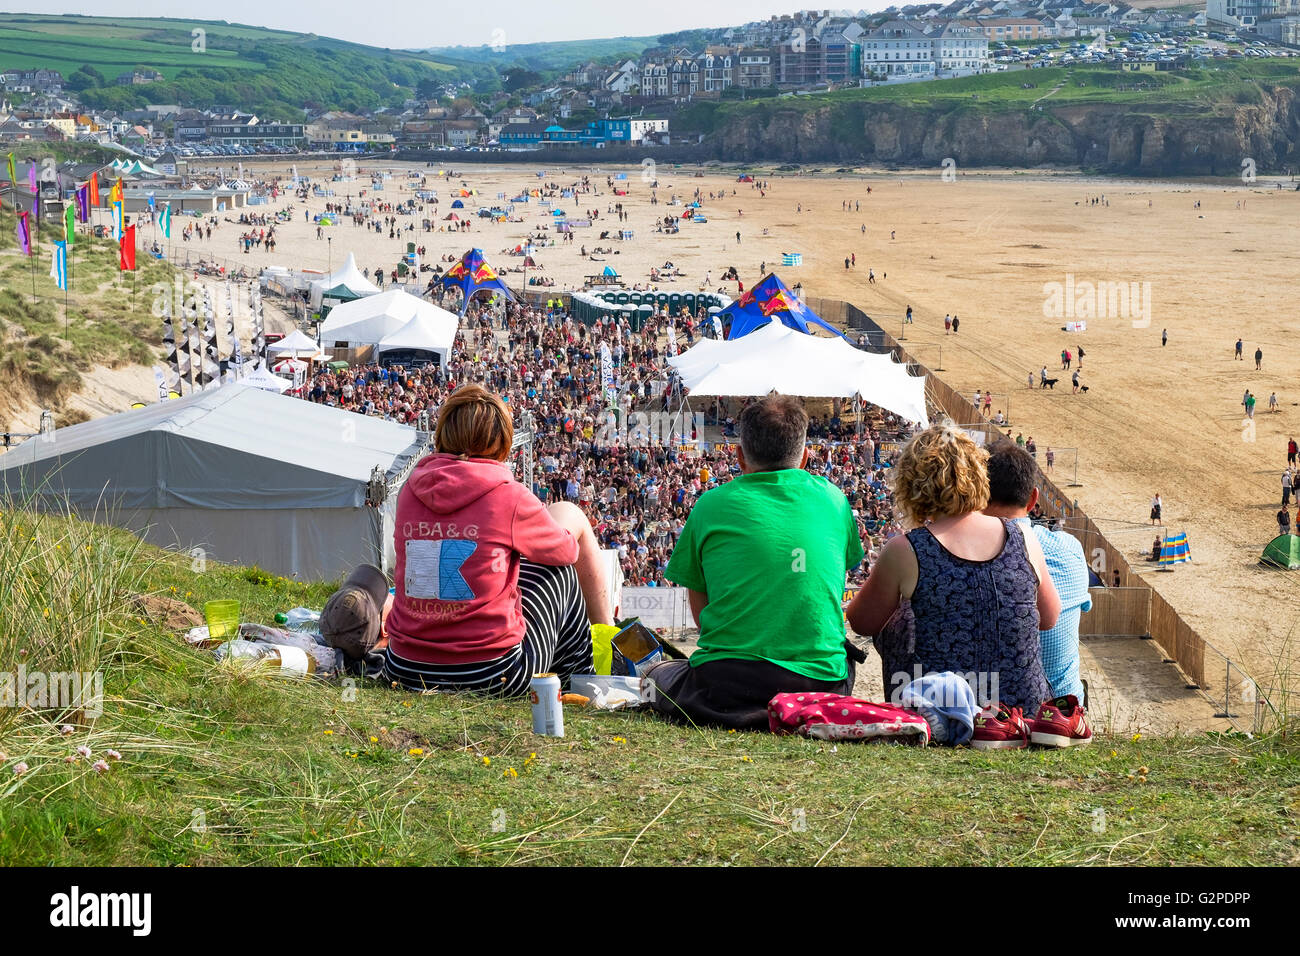 ' tunes in the dunes '  music festival on the beach in Perranporth, Cornwall, England, UK - Stock Image